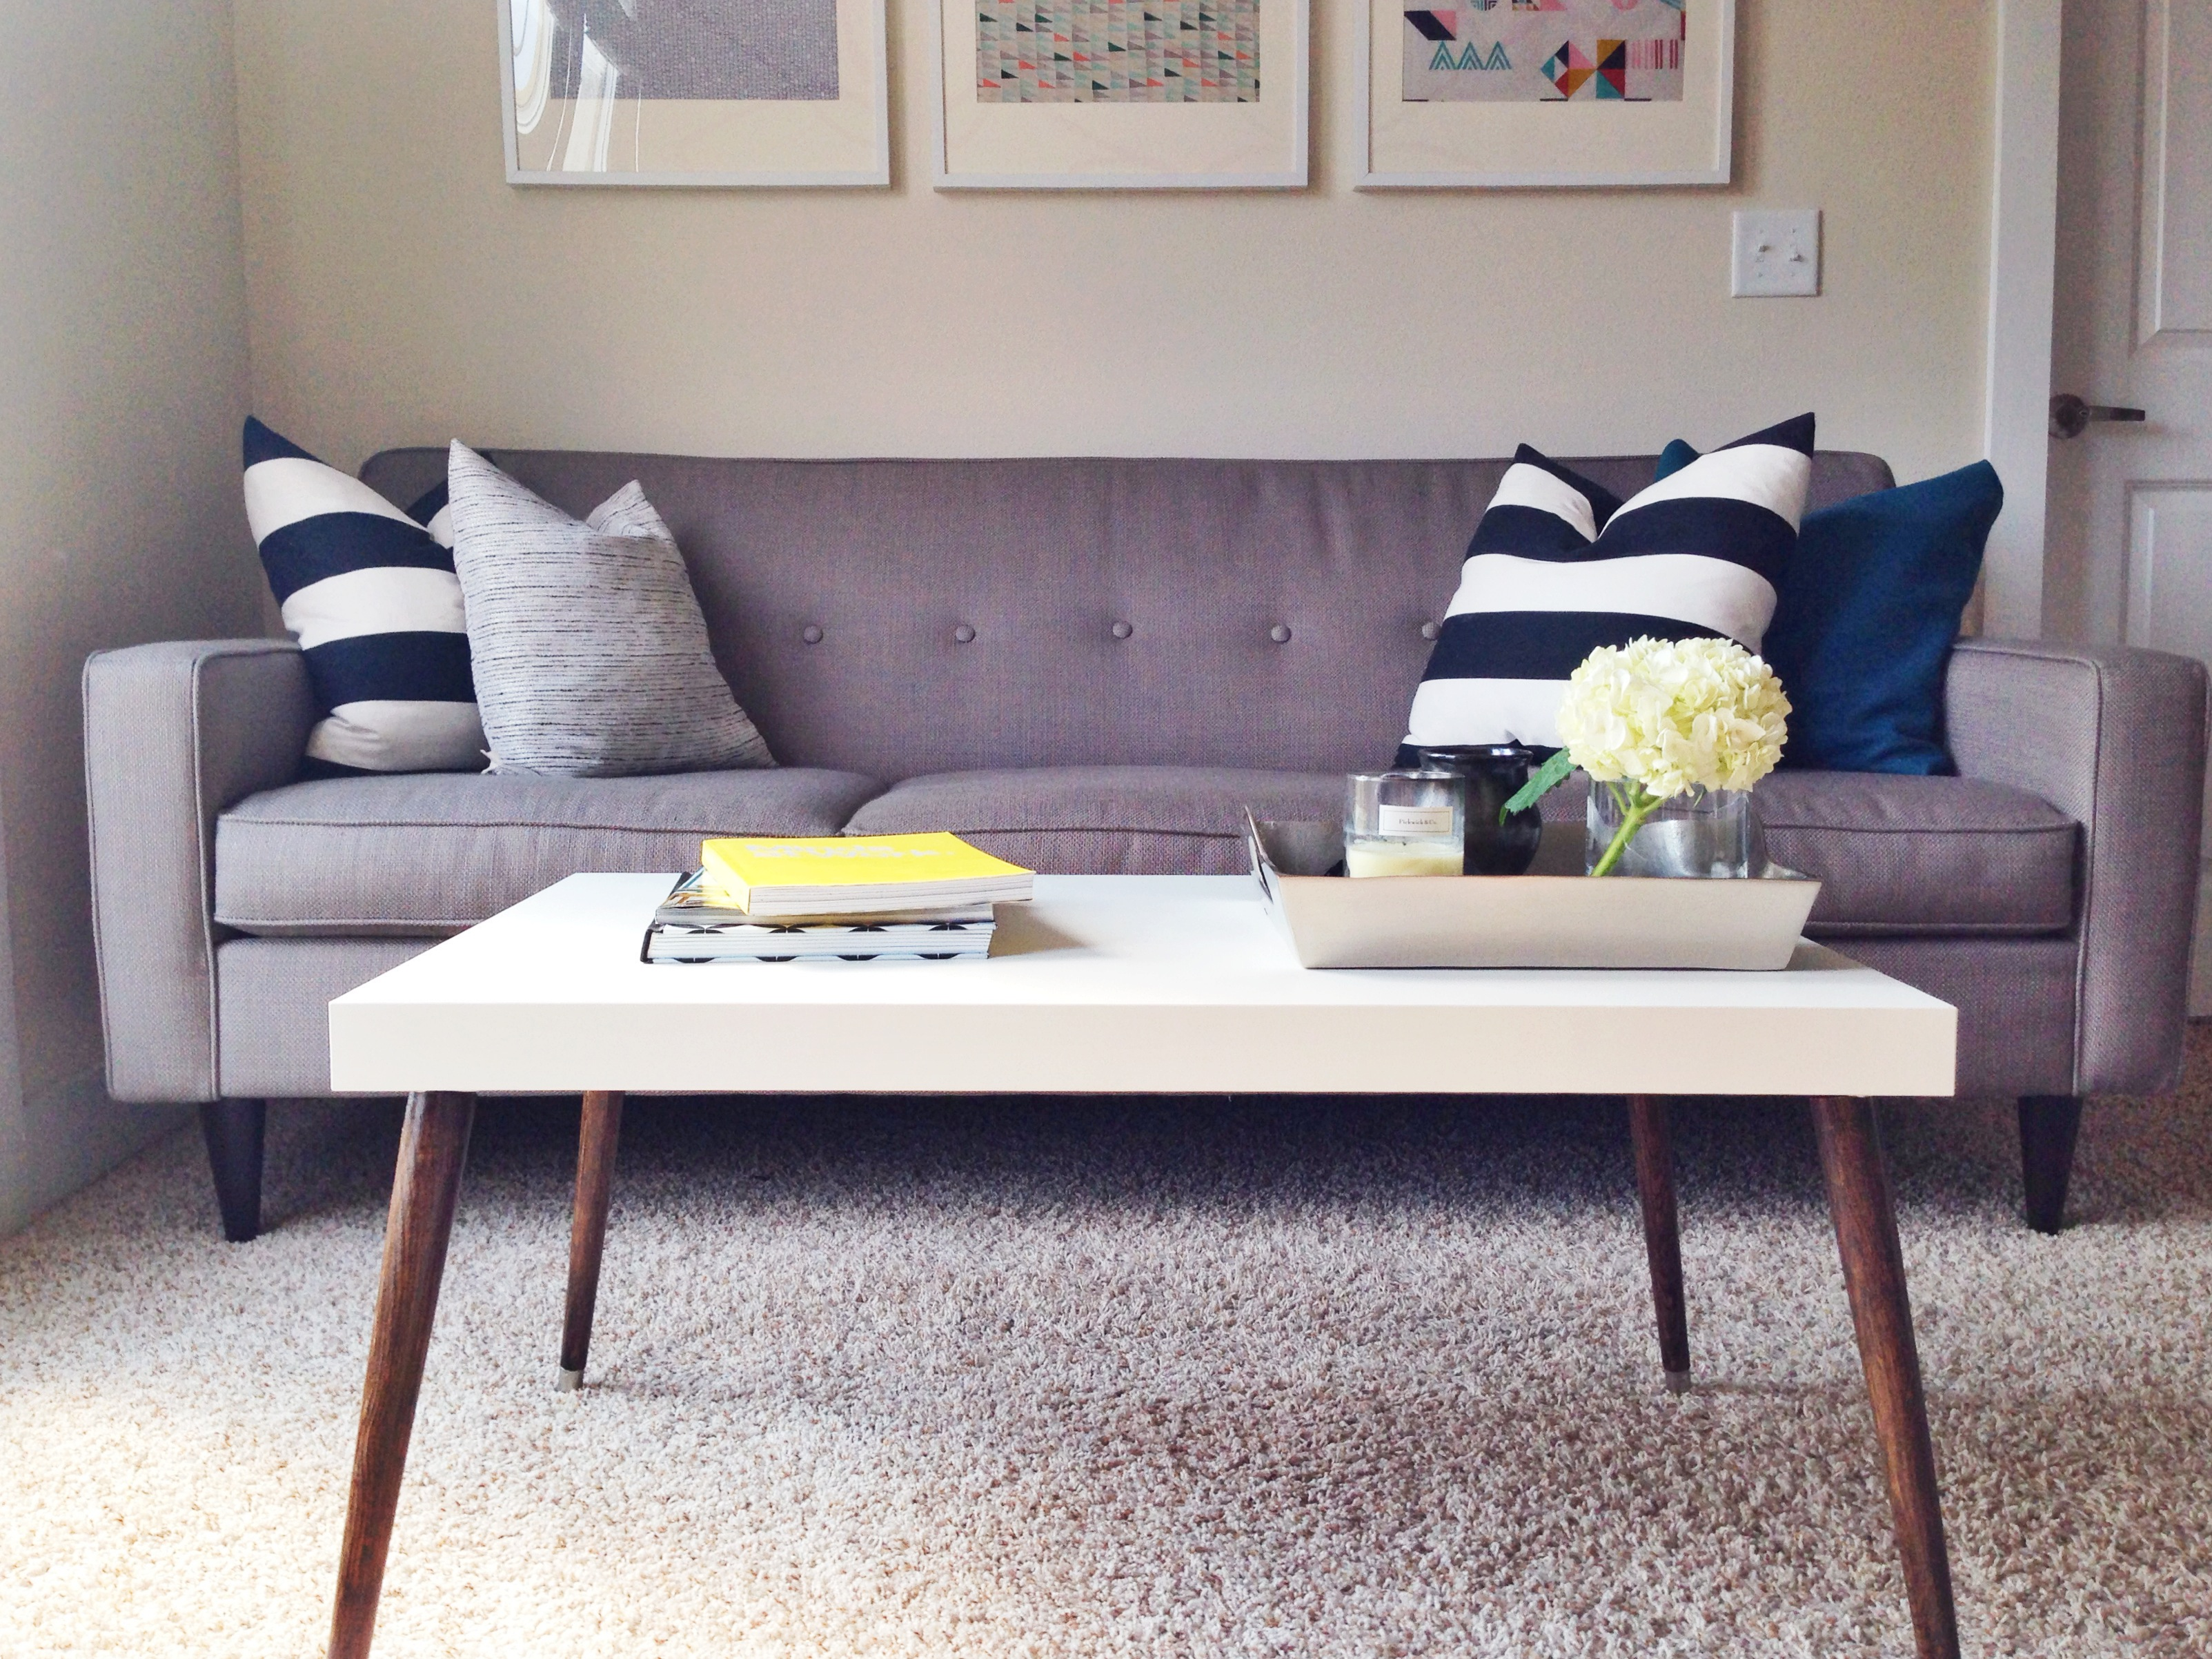 Coffee Table Ikea.Awesome Ikea Hack Of The Week A 60 Sleek Midcentury Coffee Table